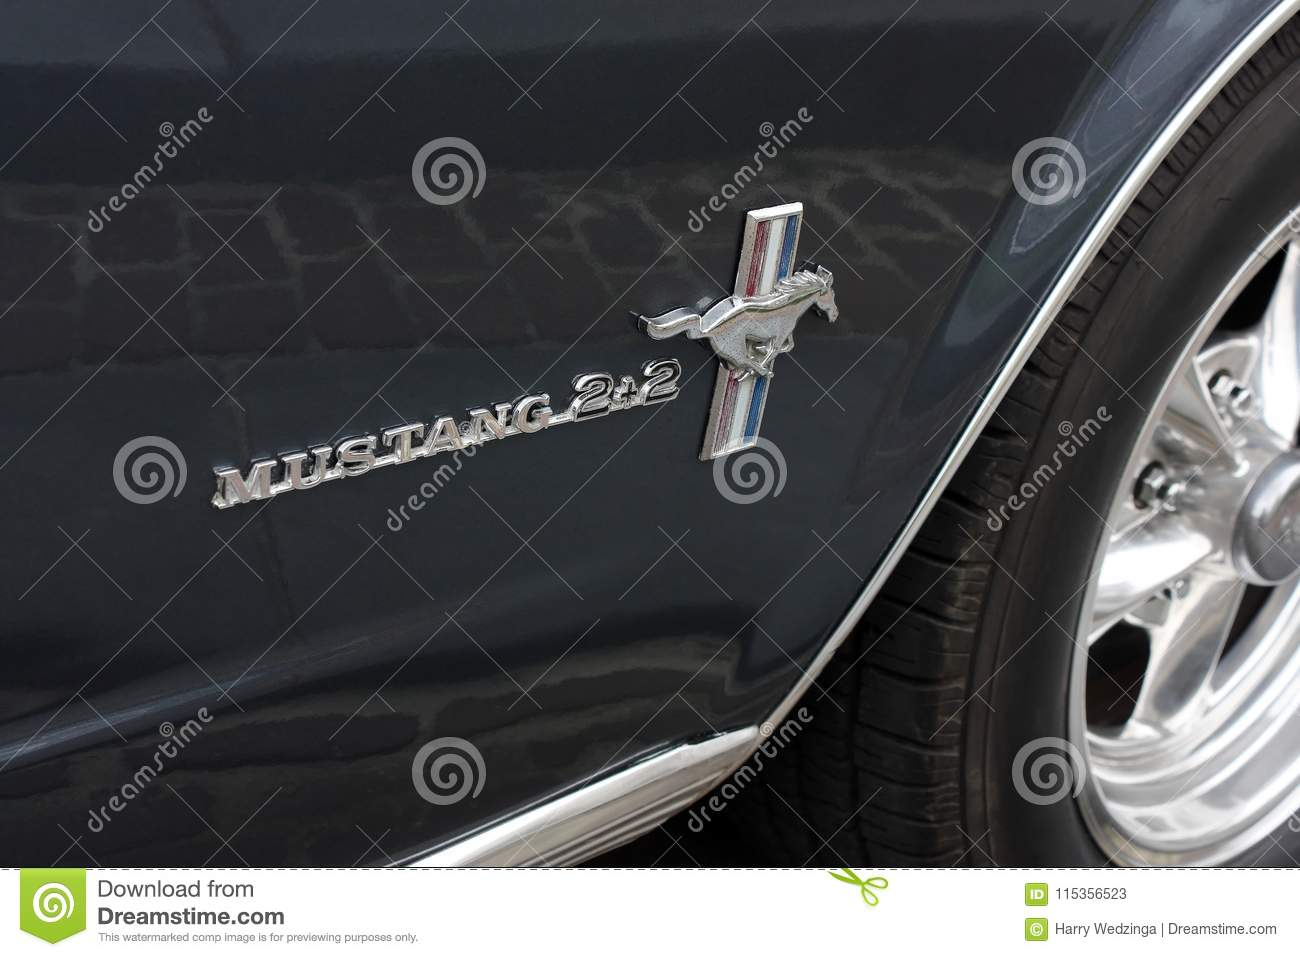 Close-up of Ford Mustang 2+2 logo